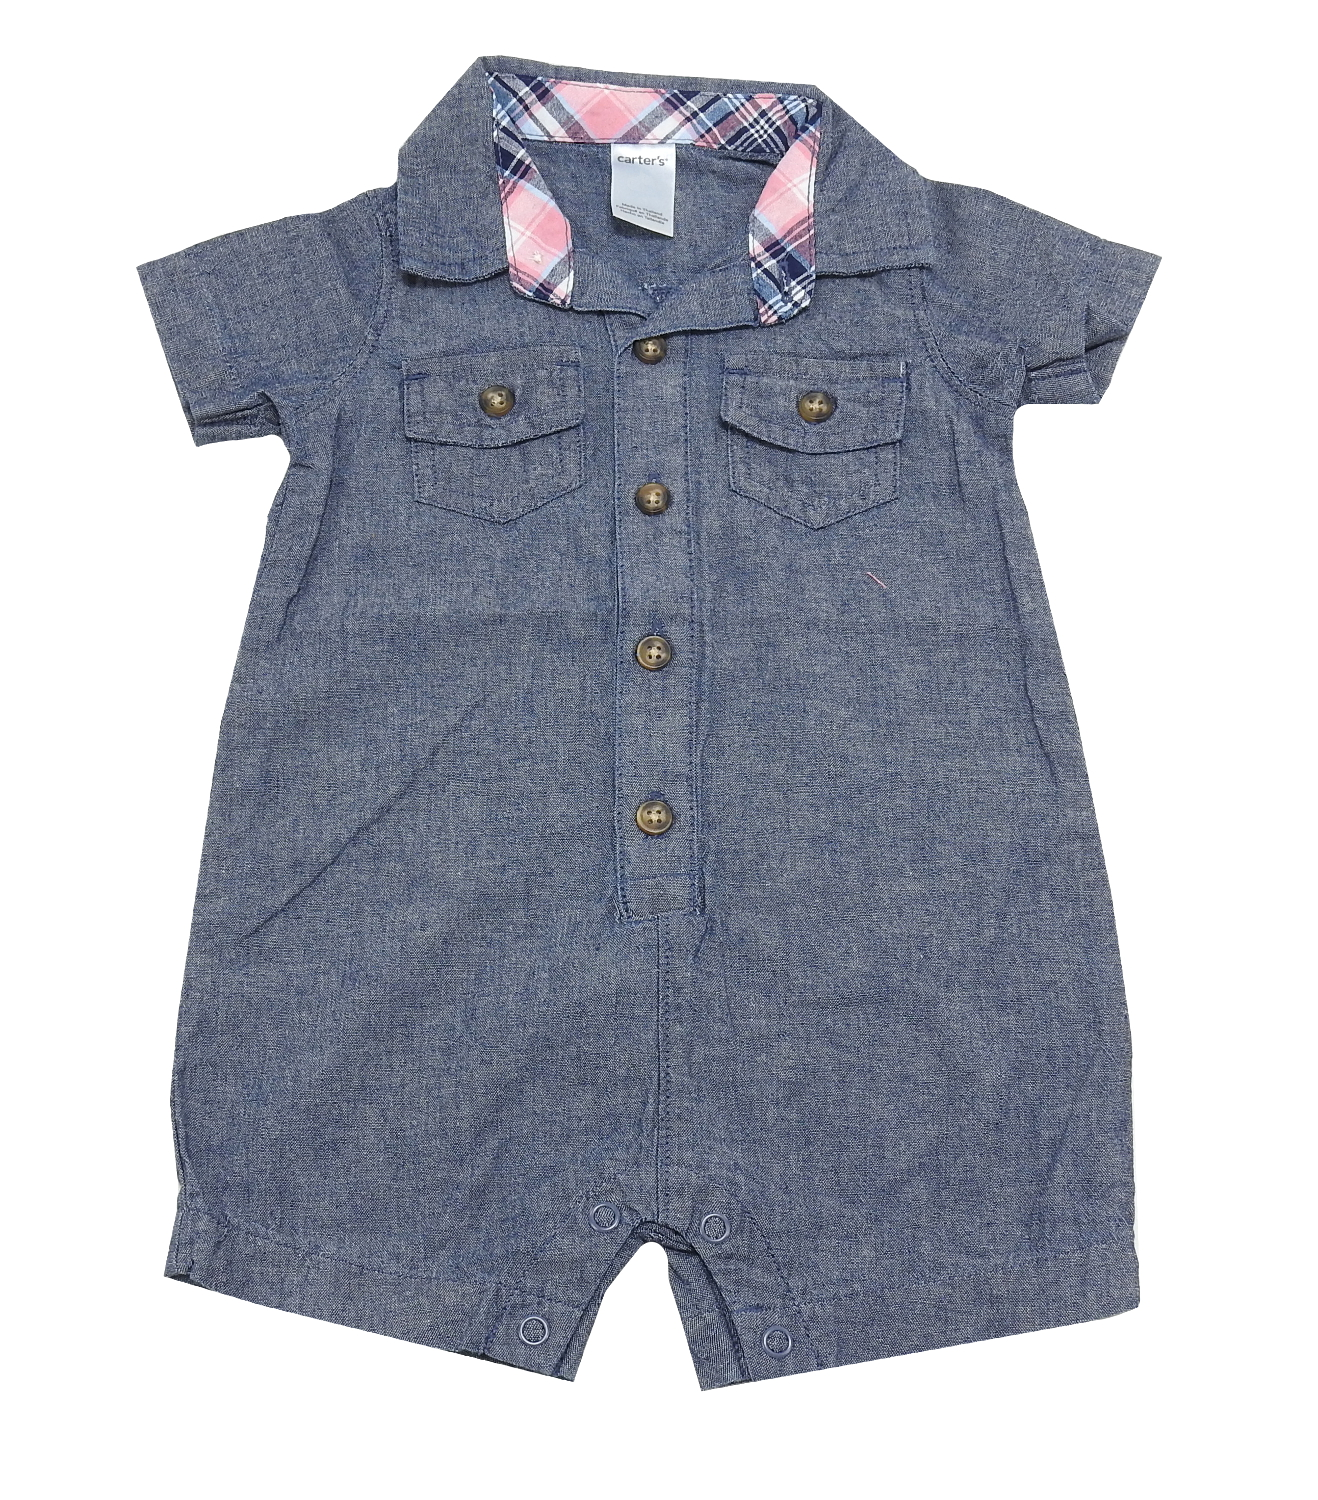 f7f2e0e86c8b Carters Baby Boys Size 6 Months Button Up Short Sleeve Romper